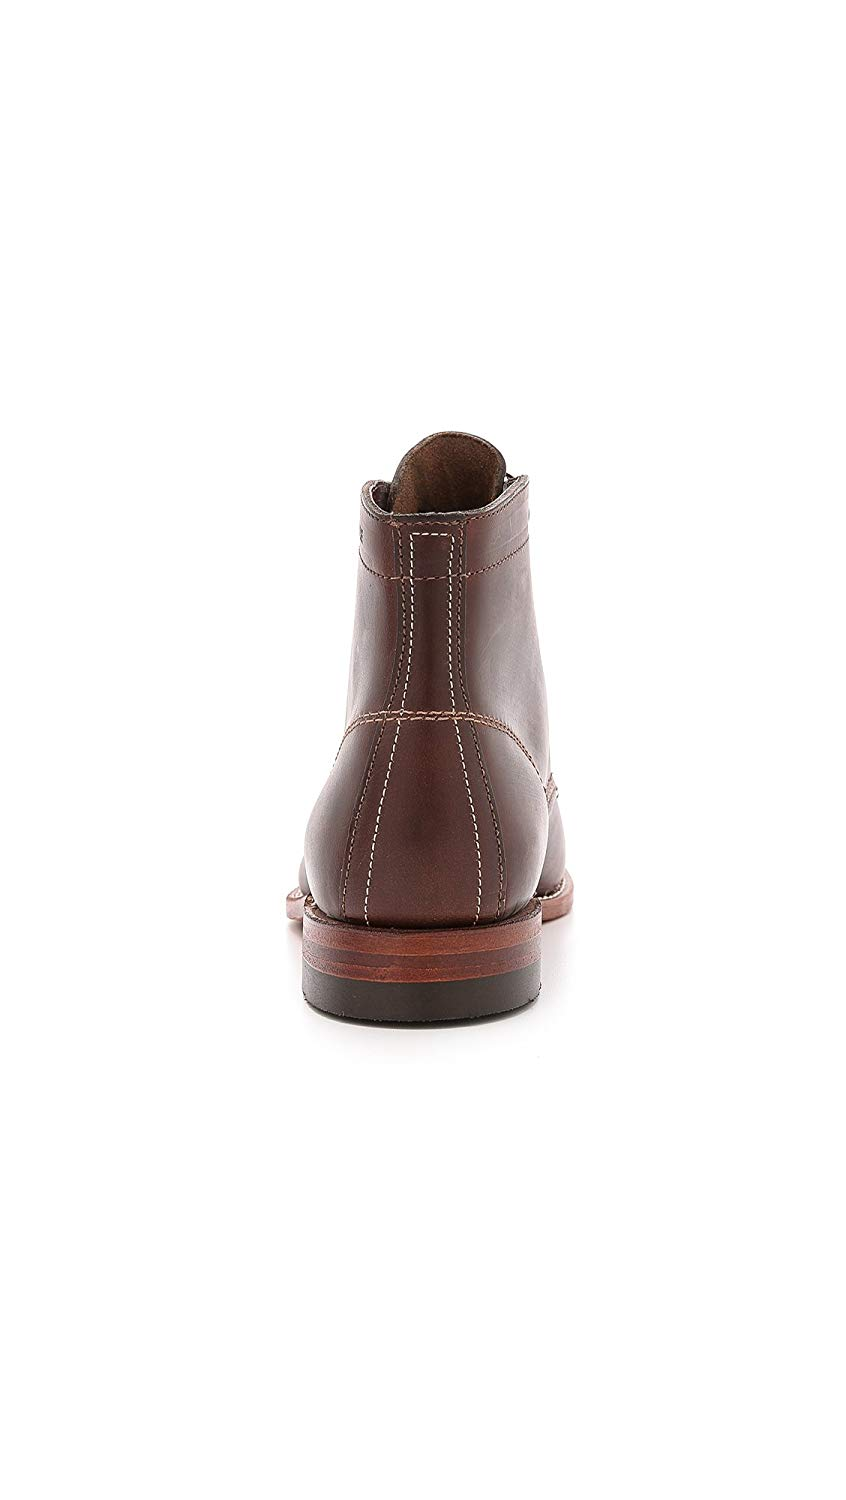 Wolverine-1000-Mile-Men-039-s-Leather-Boots-Cordovan-8-Black-Brown-Rust thumbnail 6